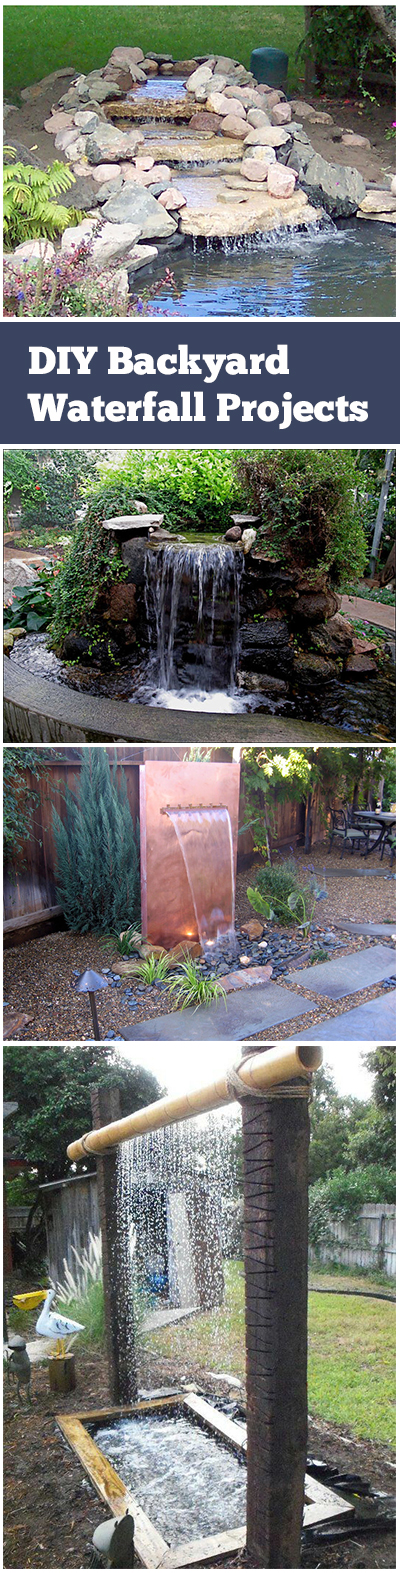 Backyard Waterfalls Diy : waterfall projects, DIY waterfall, popular pin, outdoor living, DIY